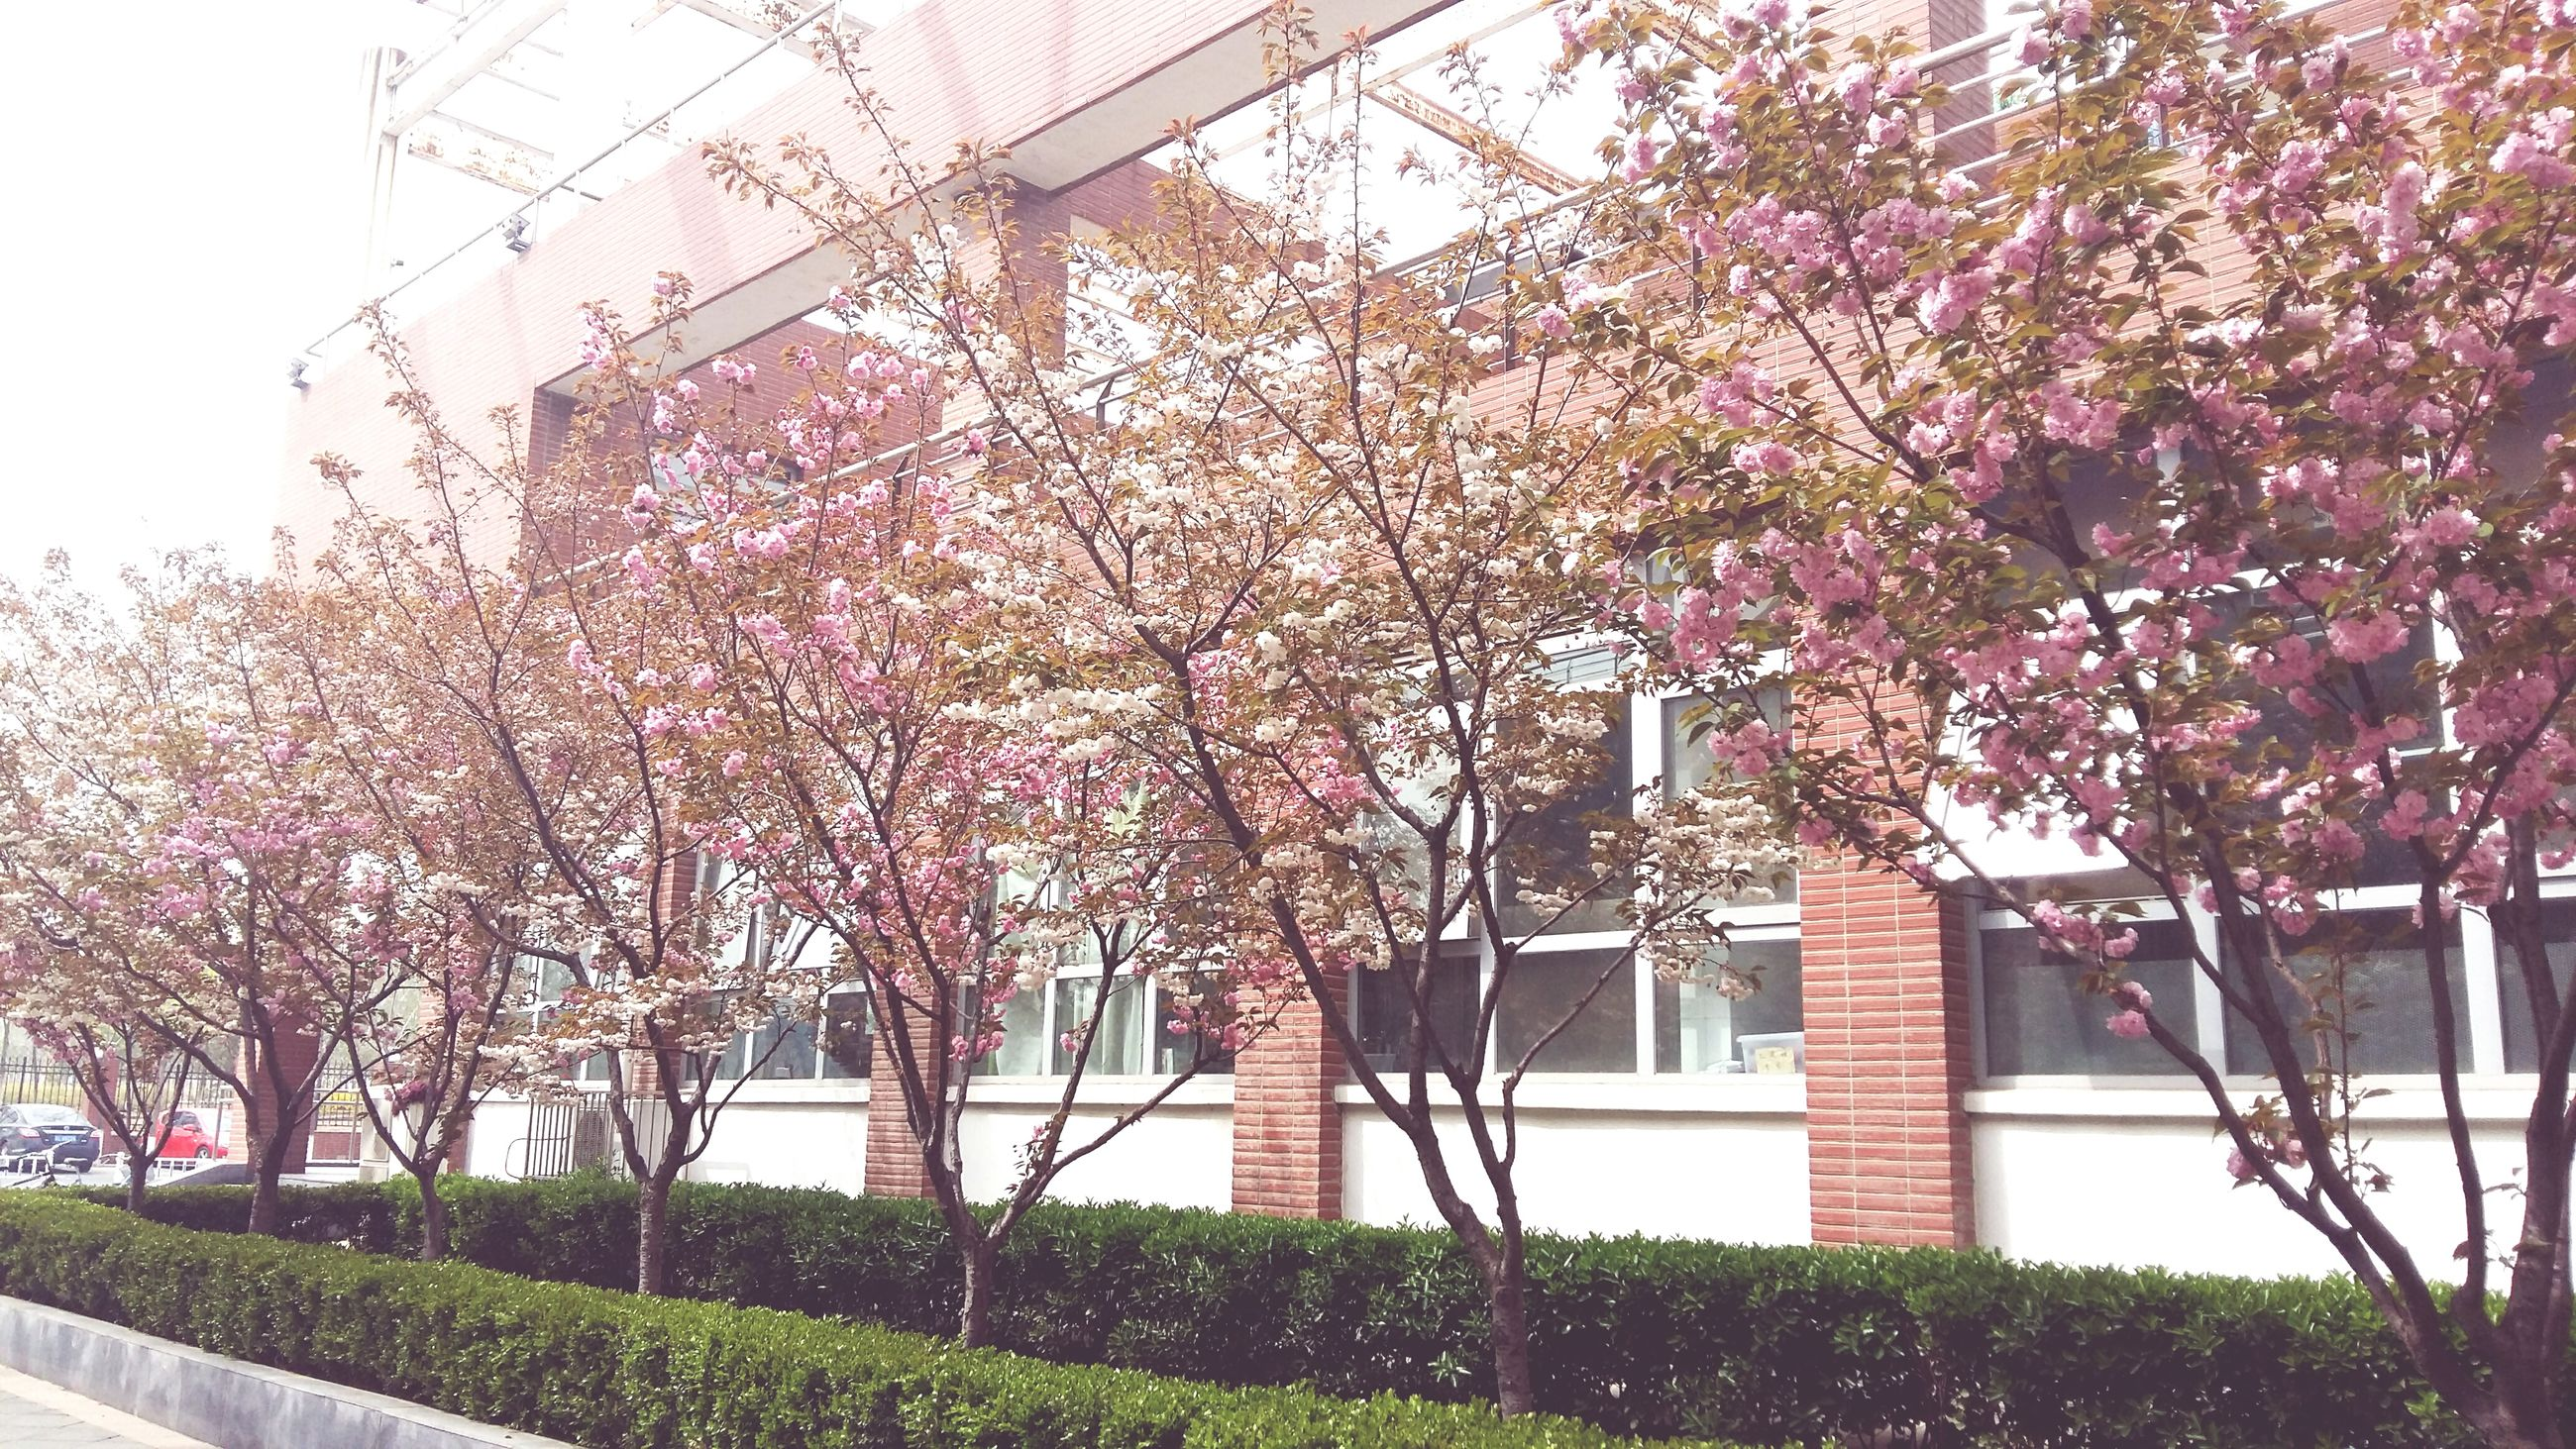 building exterior, flower, built structure, architecture, growth, tree, freshness, branch, house, plant, nature, blossom, low angle view, day, fragility, residential structure, outdoors, window, springtime, residential building